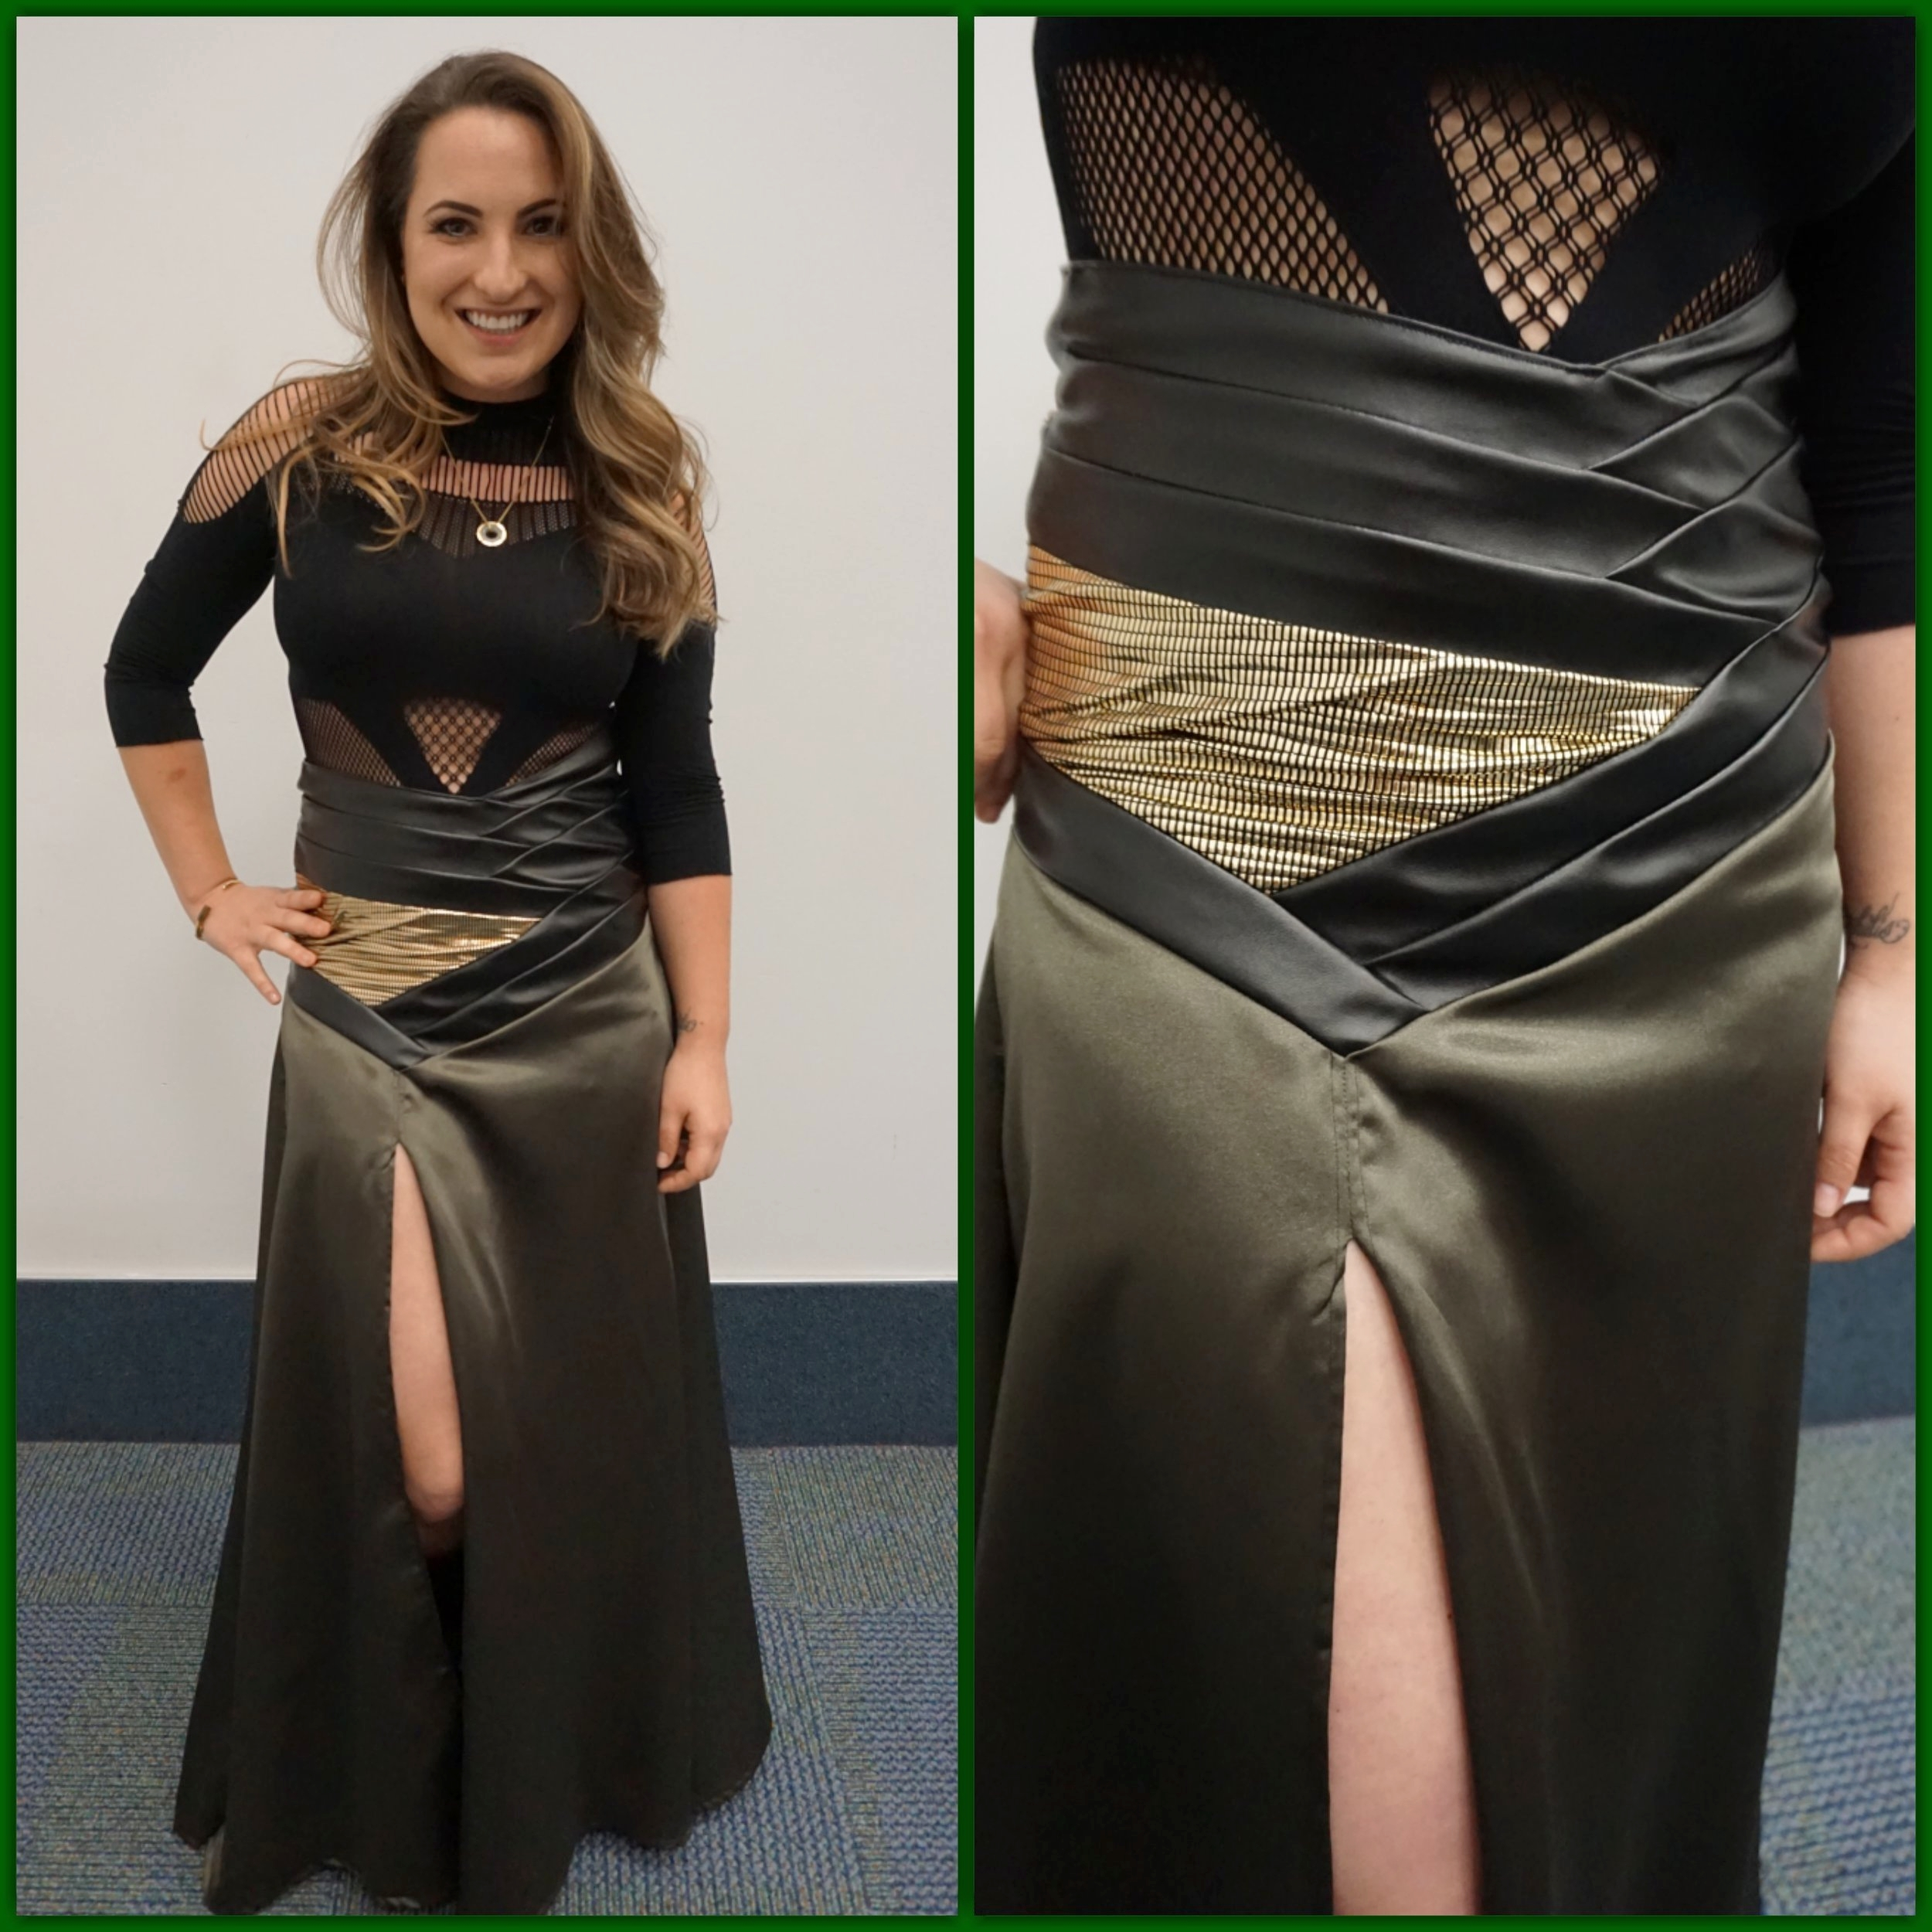 Camille in a Loki inspired skirt she designed and made